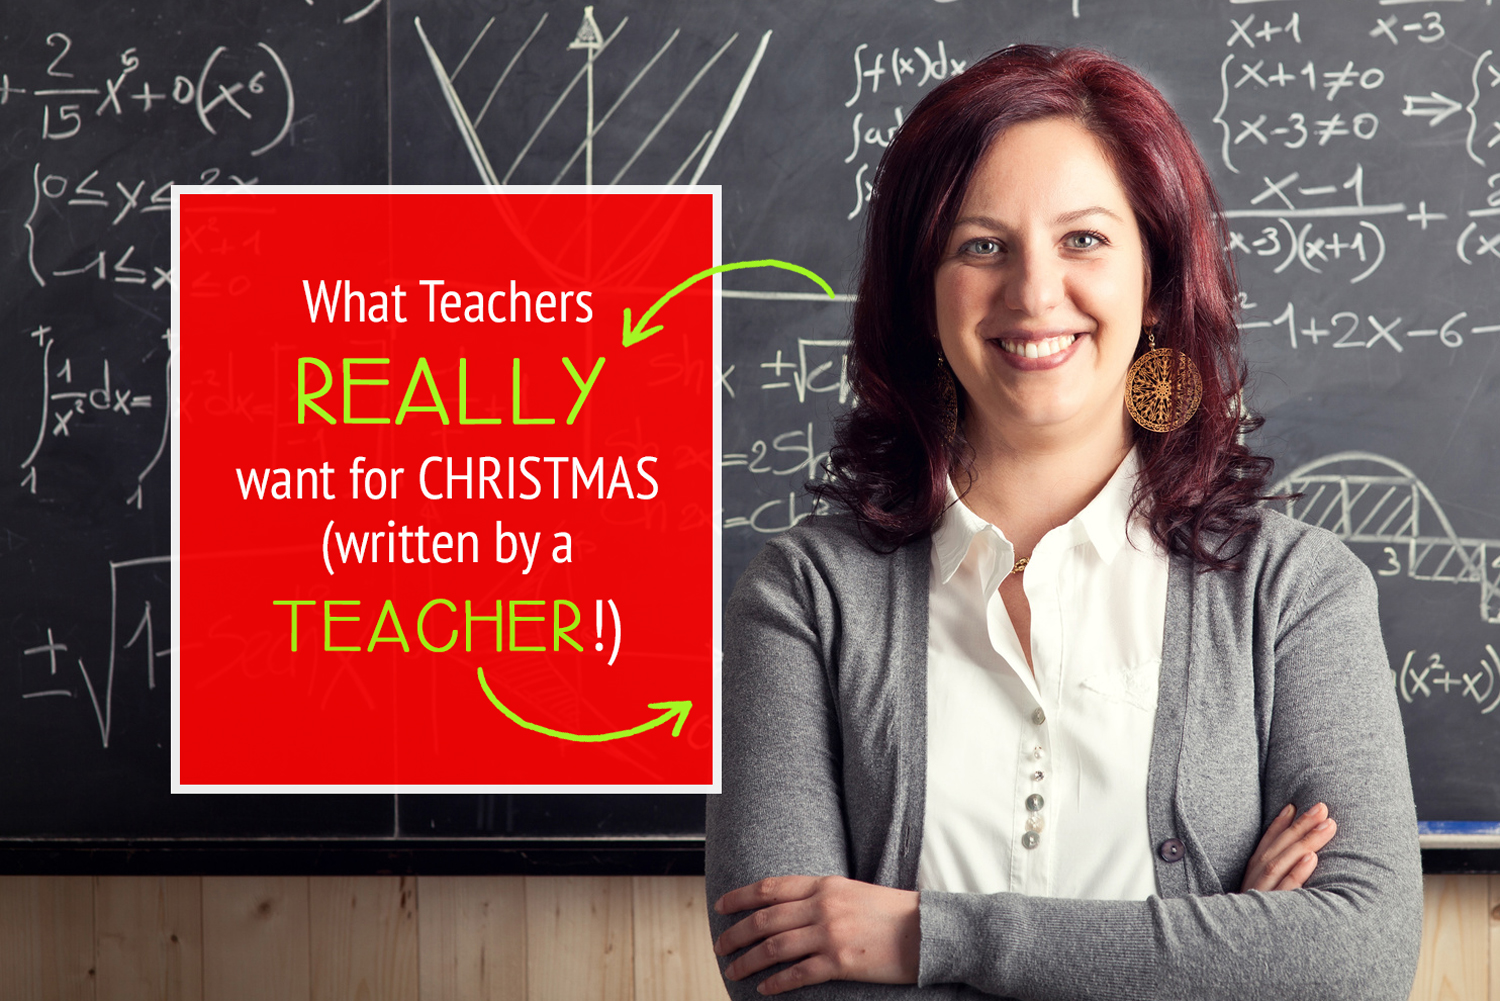 What Teachers REALLY want for Christmas! #Teacher #Christmas #Gift #Ideas #Creative #Cheap #Easy #DIY